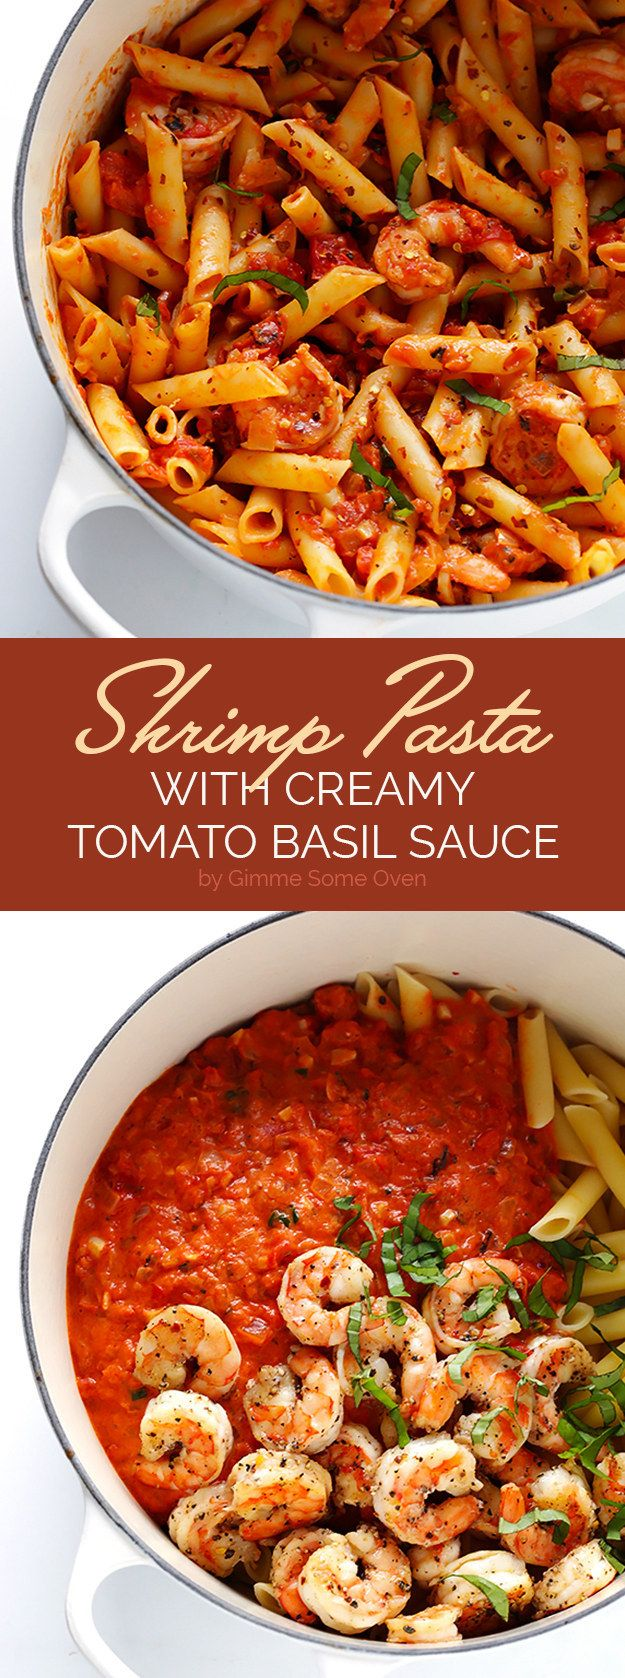 Shrimp Pasta with Creamy Tomato-Basil Sauce | Here's What You Should Eat For Dinner This Week